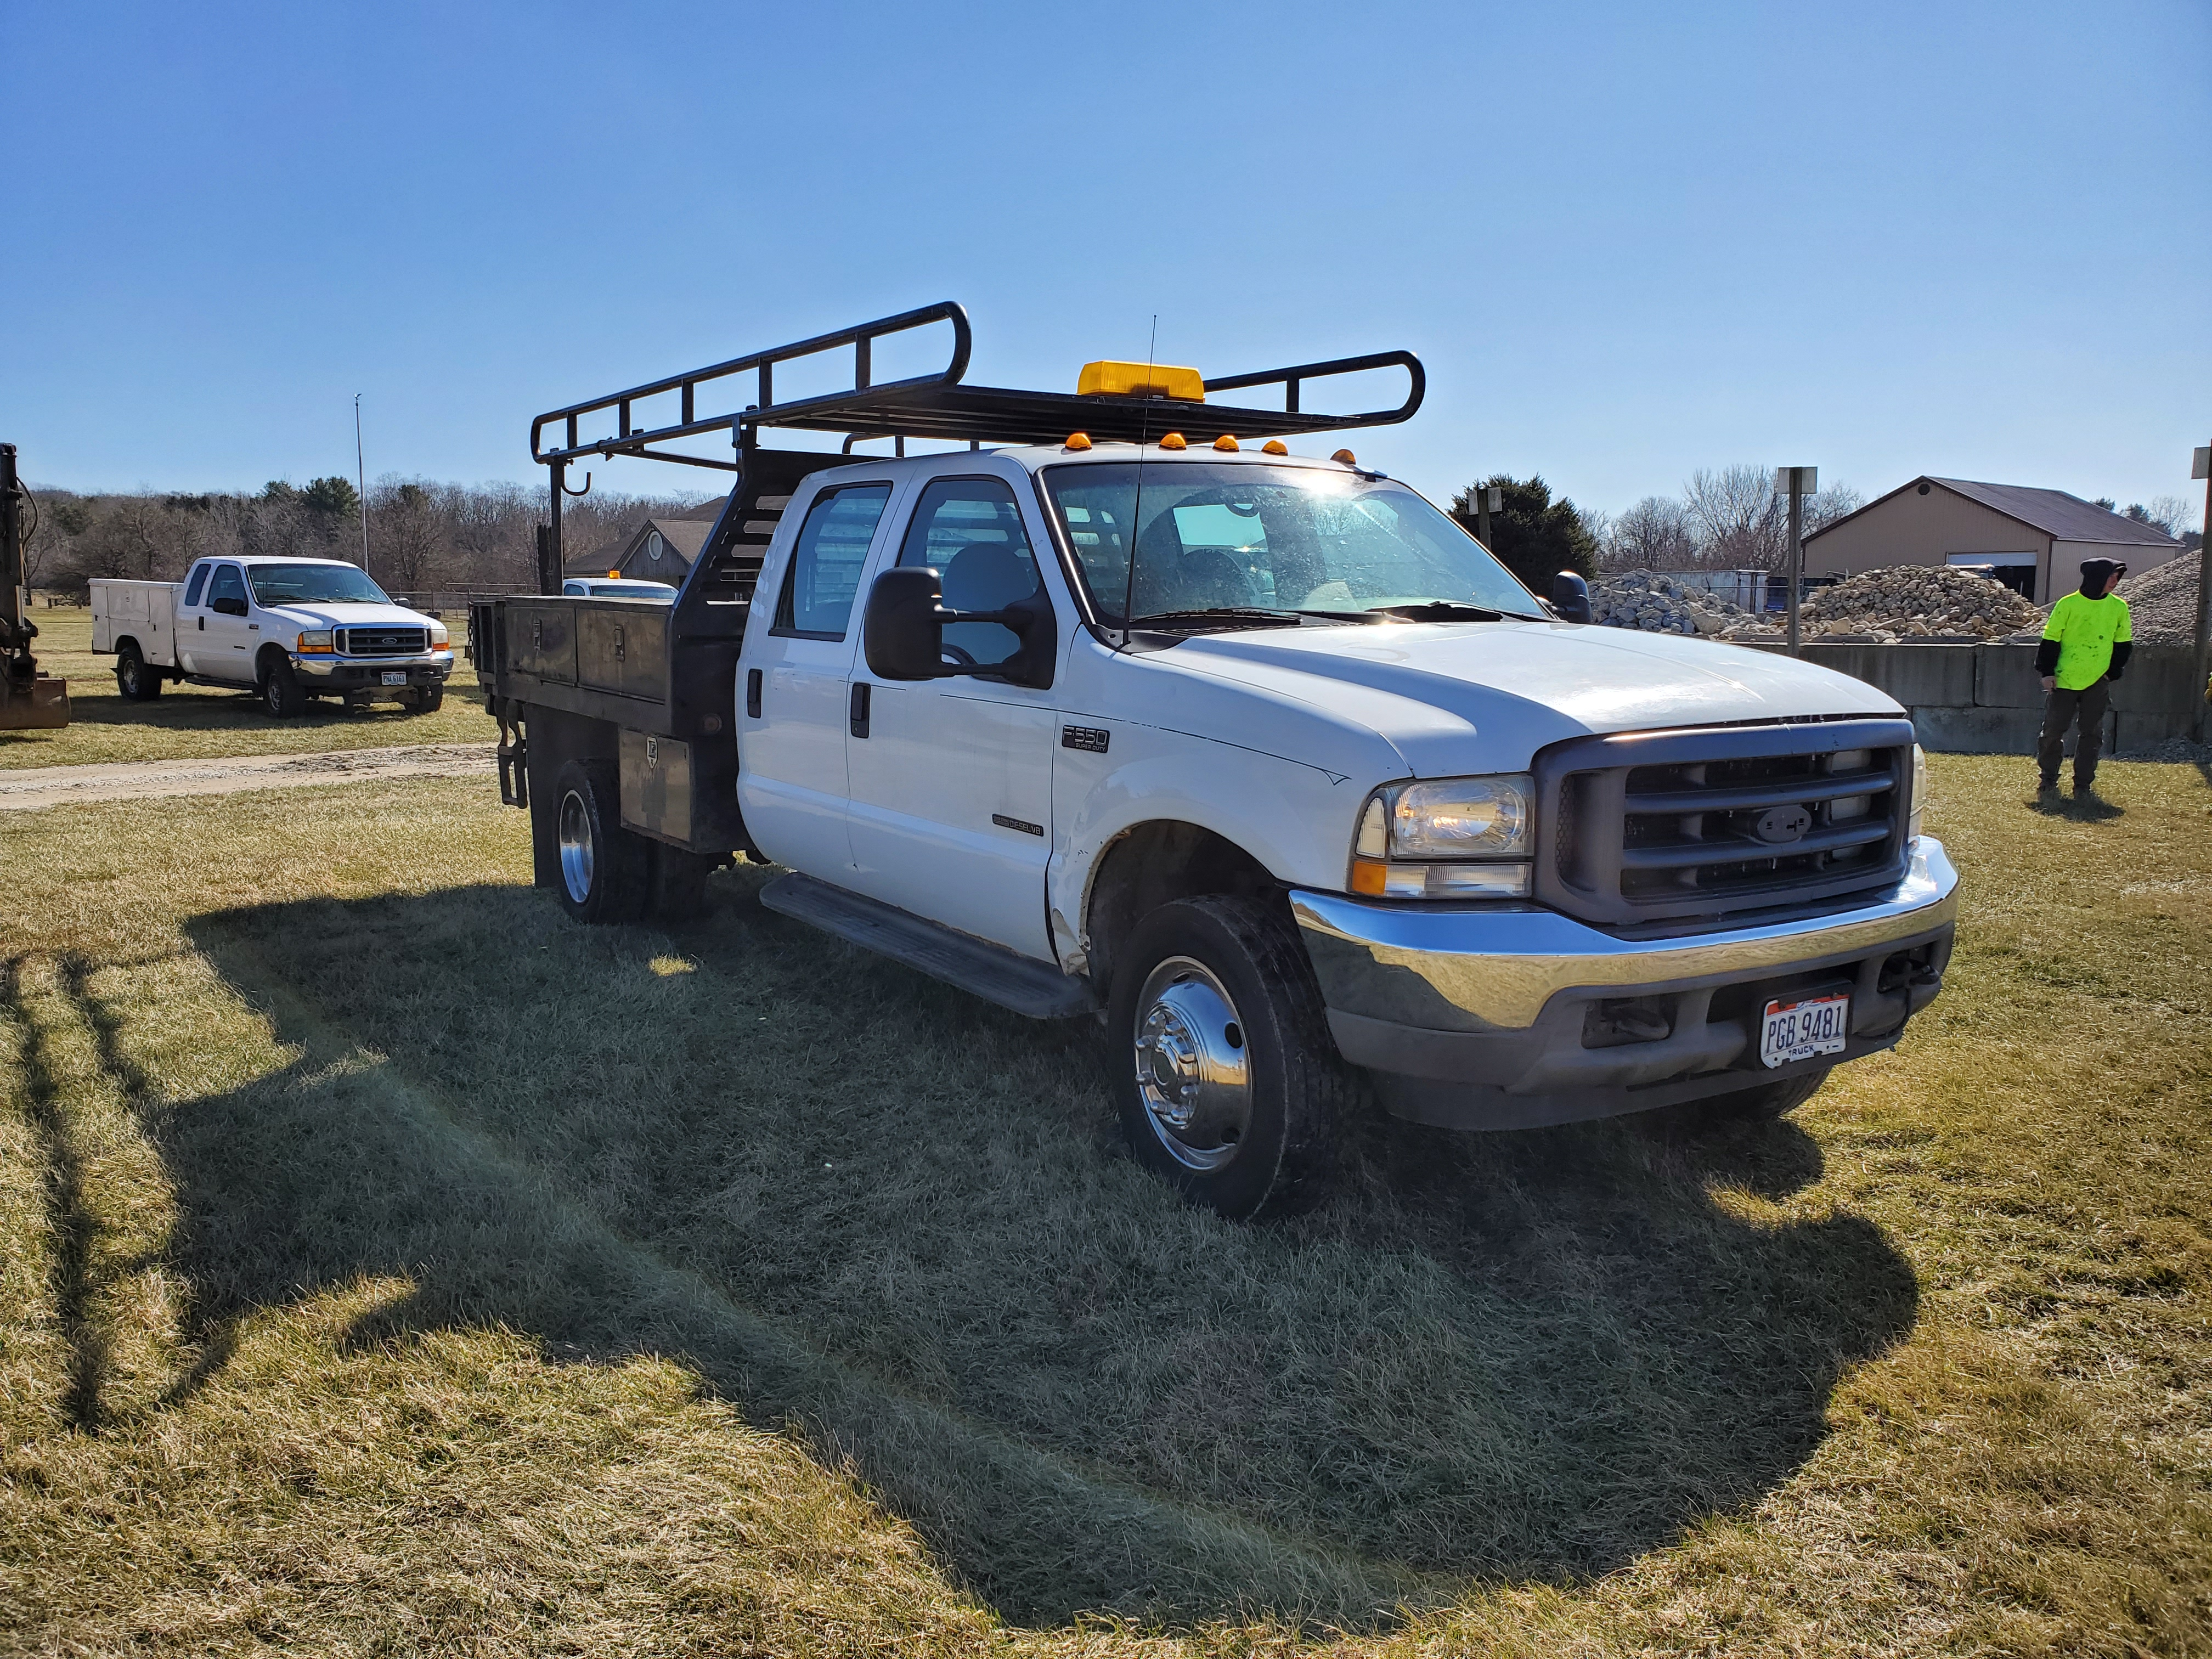 2003 F550 Ford Super Duty Pickup, Automatic, 7.3 Power Stroke Diesel, 8' Foot Omaha Flatbed - Image 3 of 18